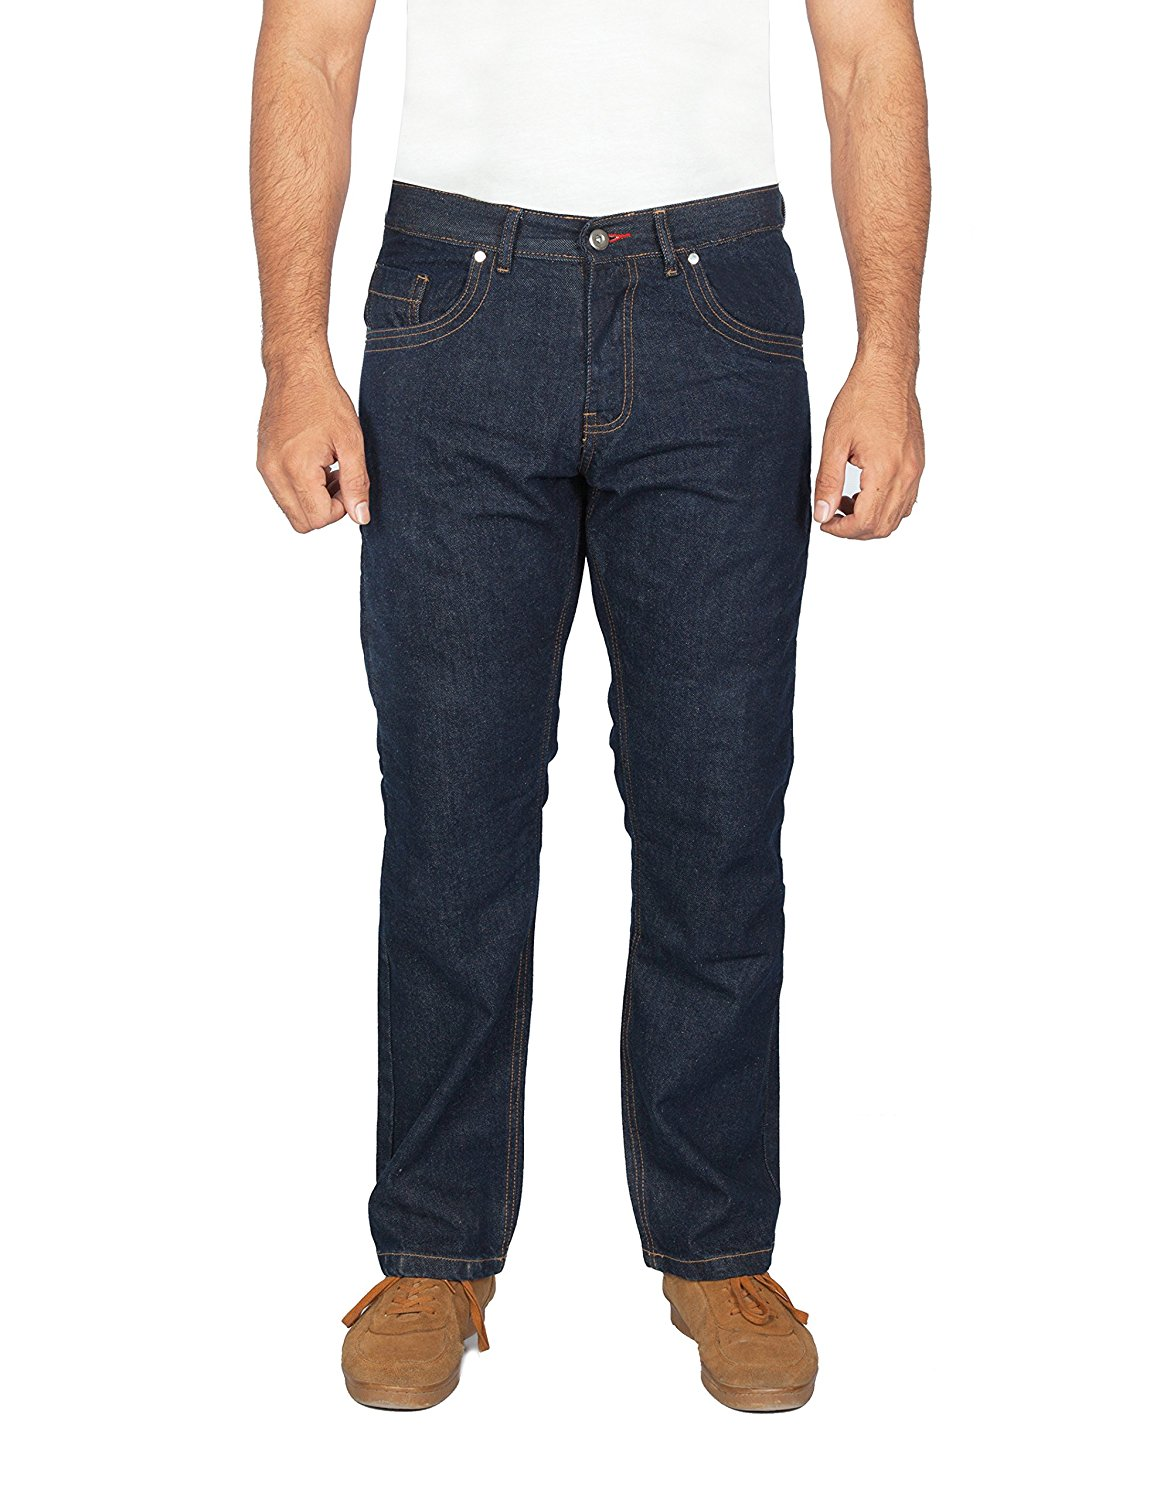 OneDayMore Straight Fit Aramid Reinforced Motorcycle Straight Fit Jeans, Blue, Free Protectors. 8002